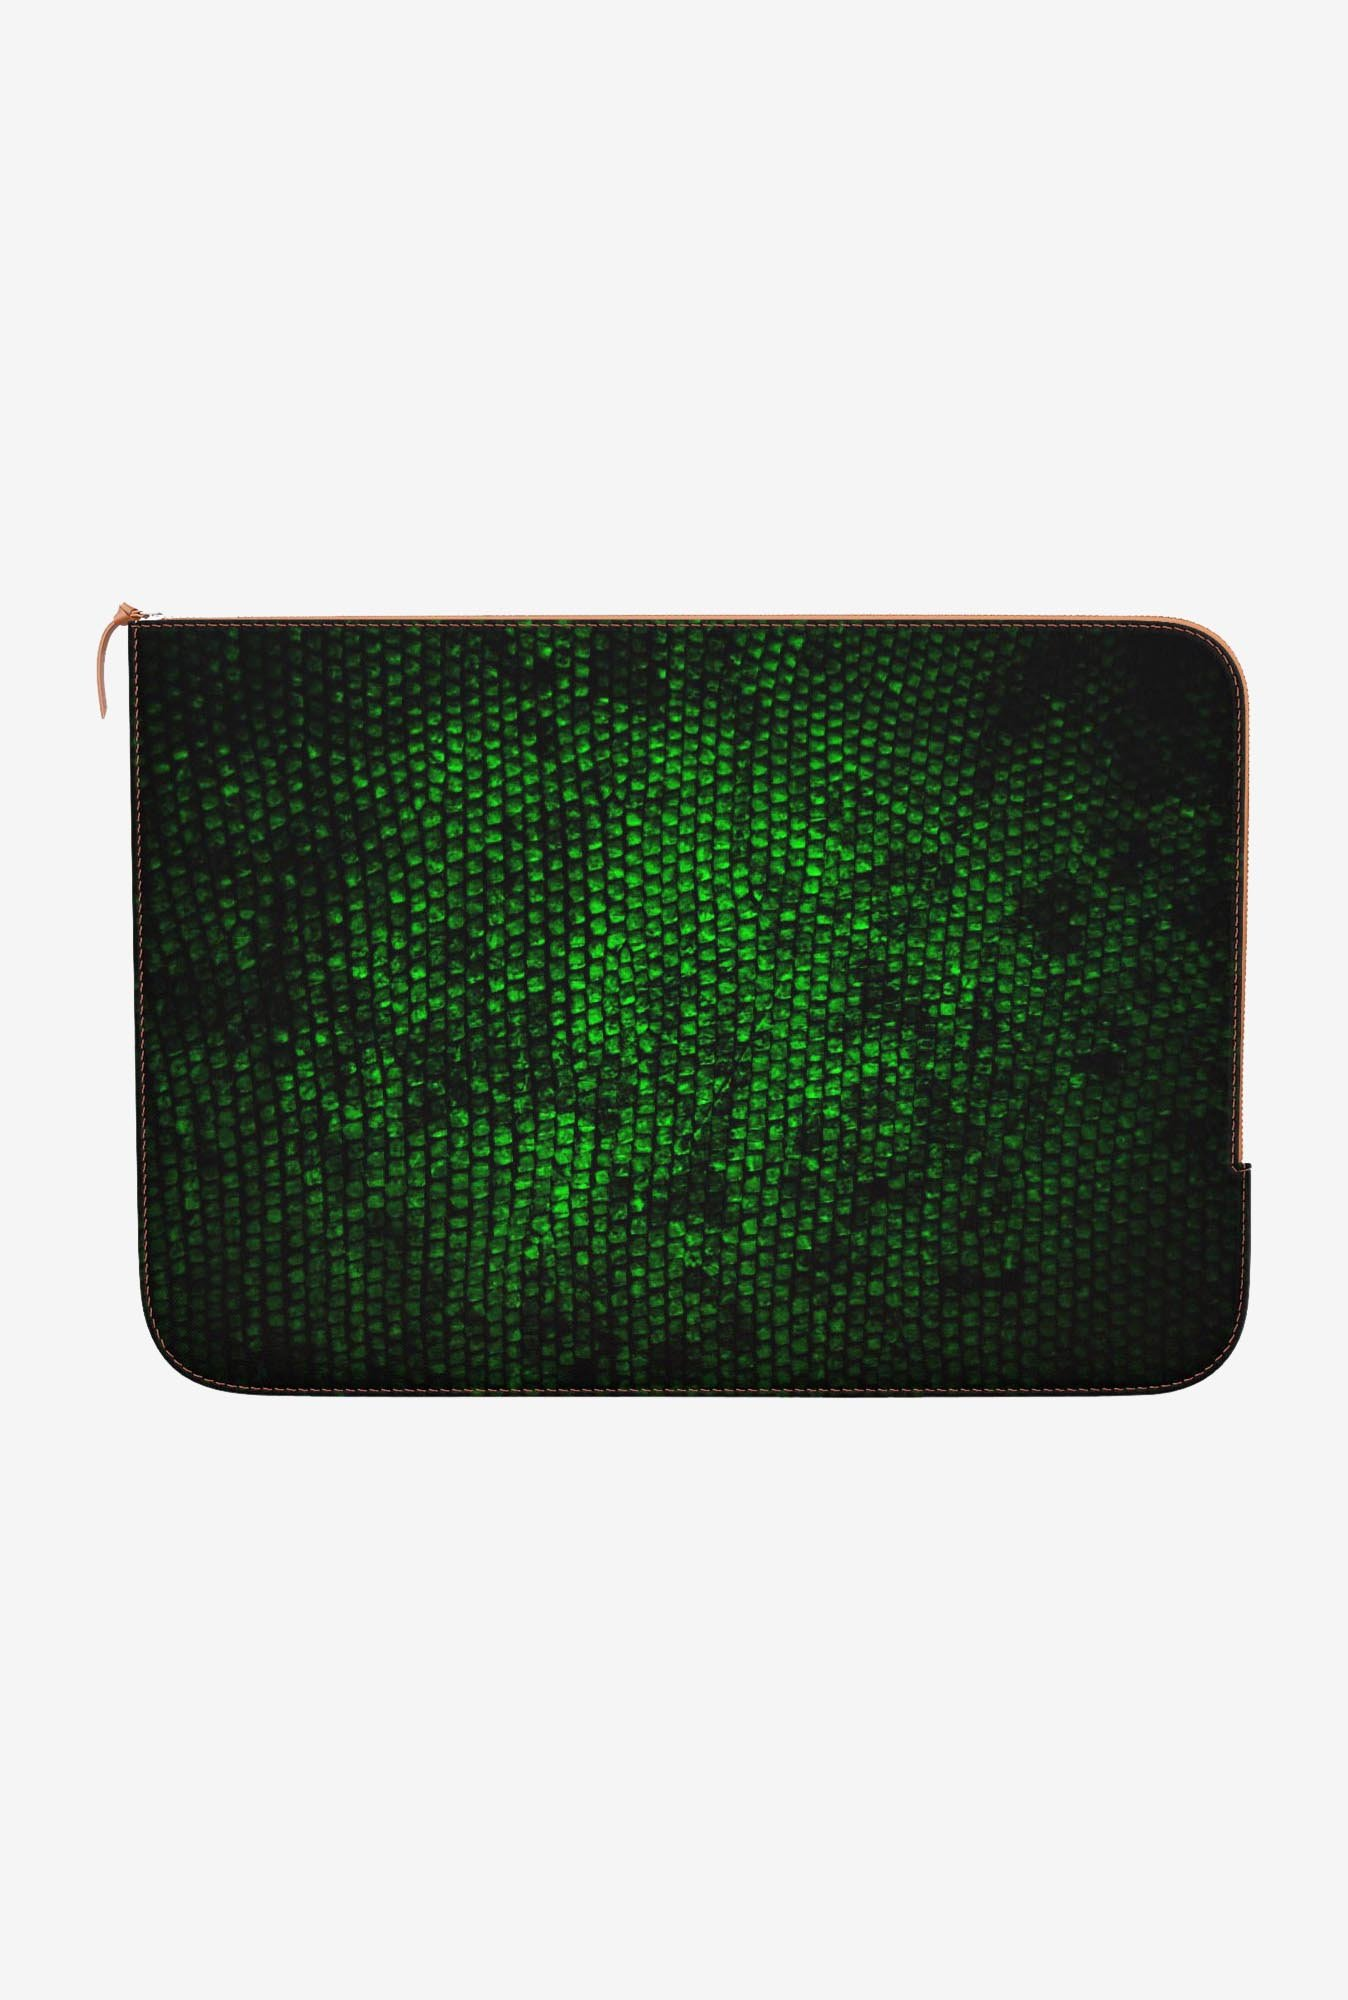 DailyObjects Reptile Skin MacBook Air 11 Zippered Sleeve